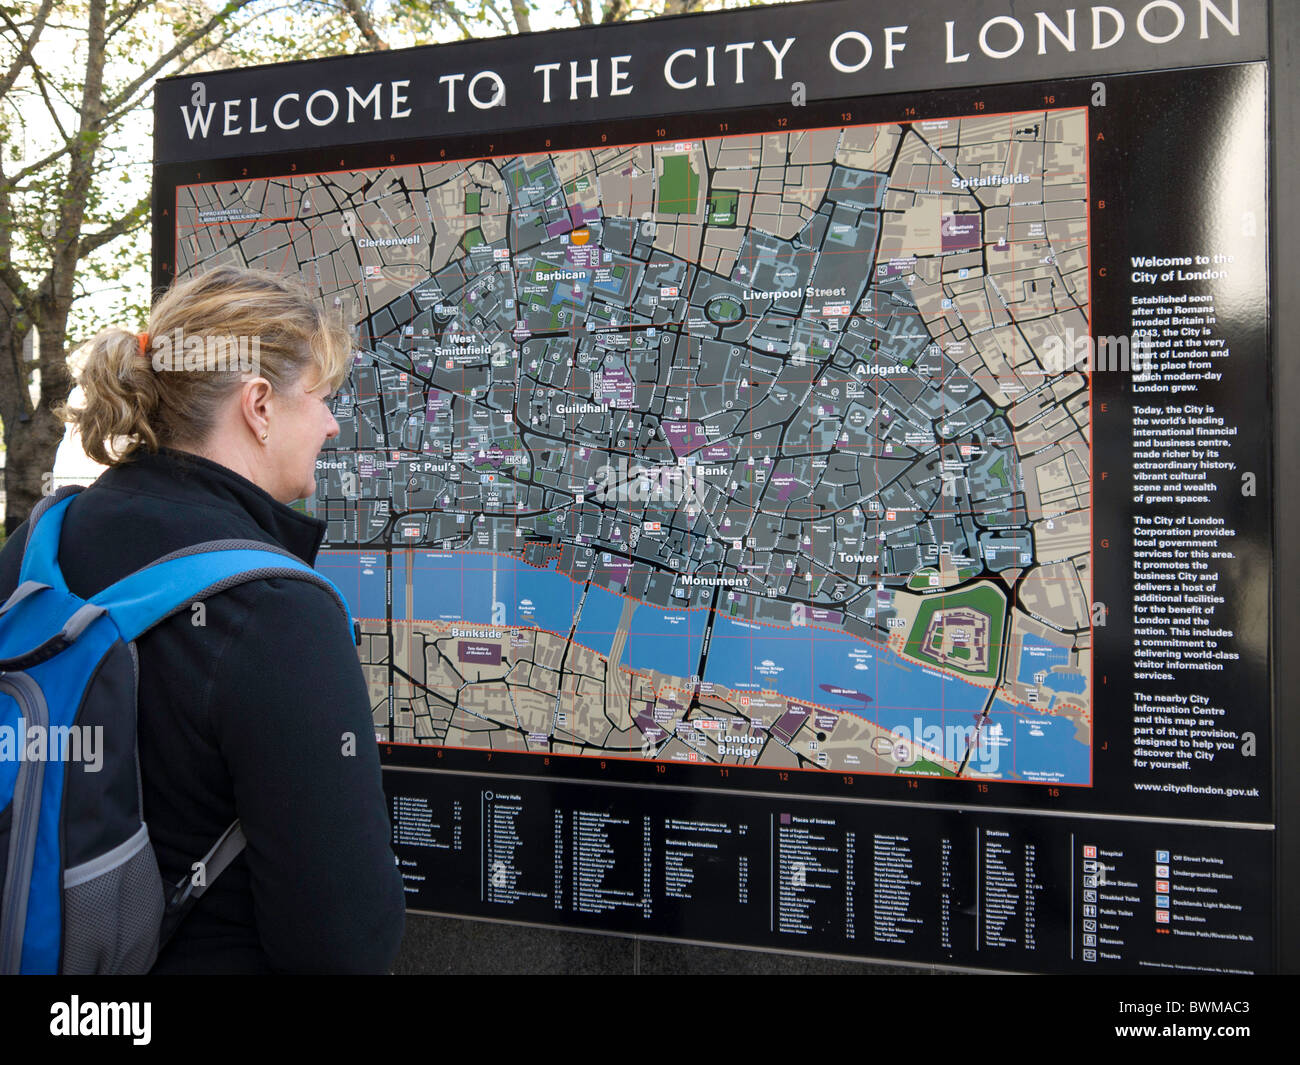 tourist to london looking for directions on the city of london street map near to st pauls cathedral